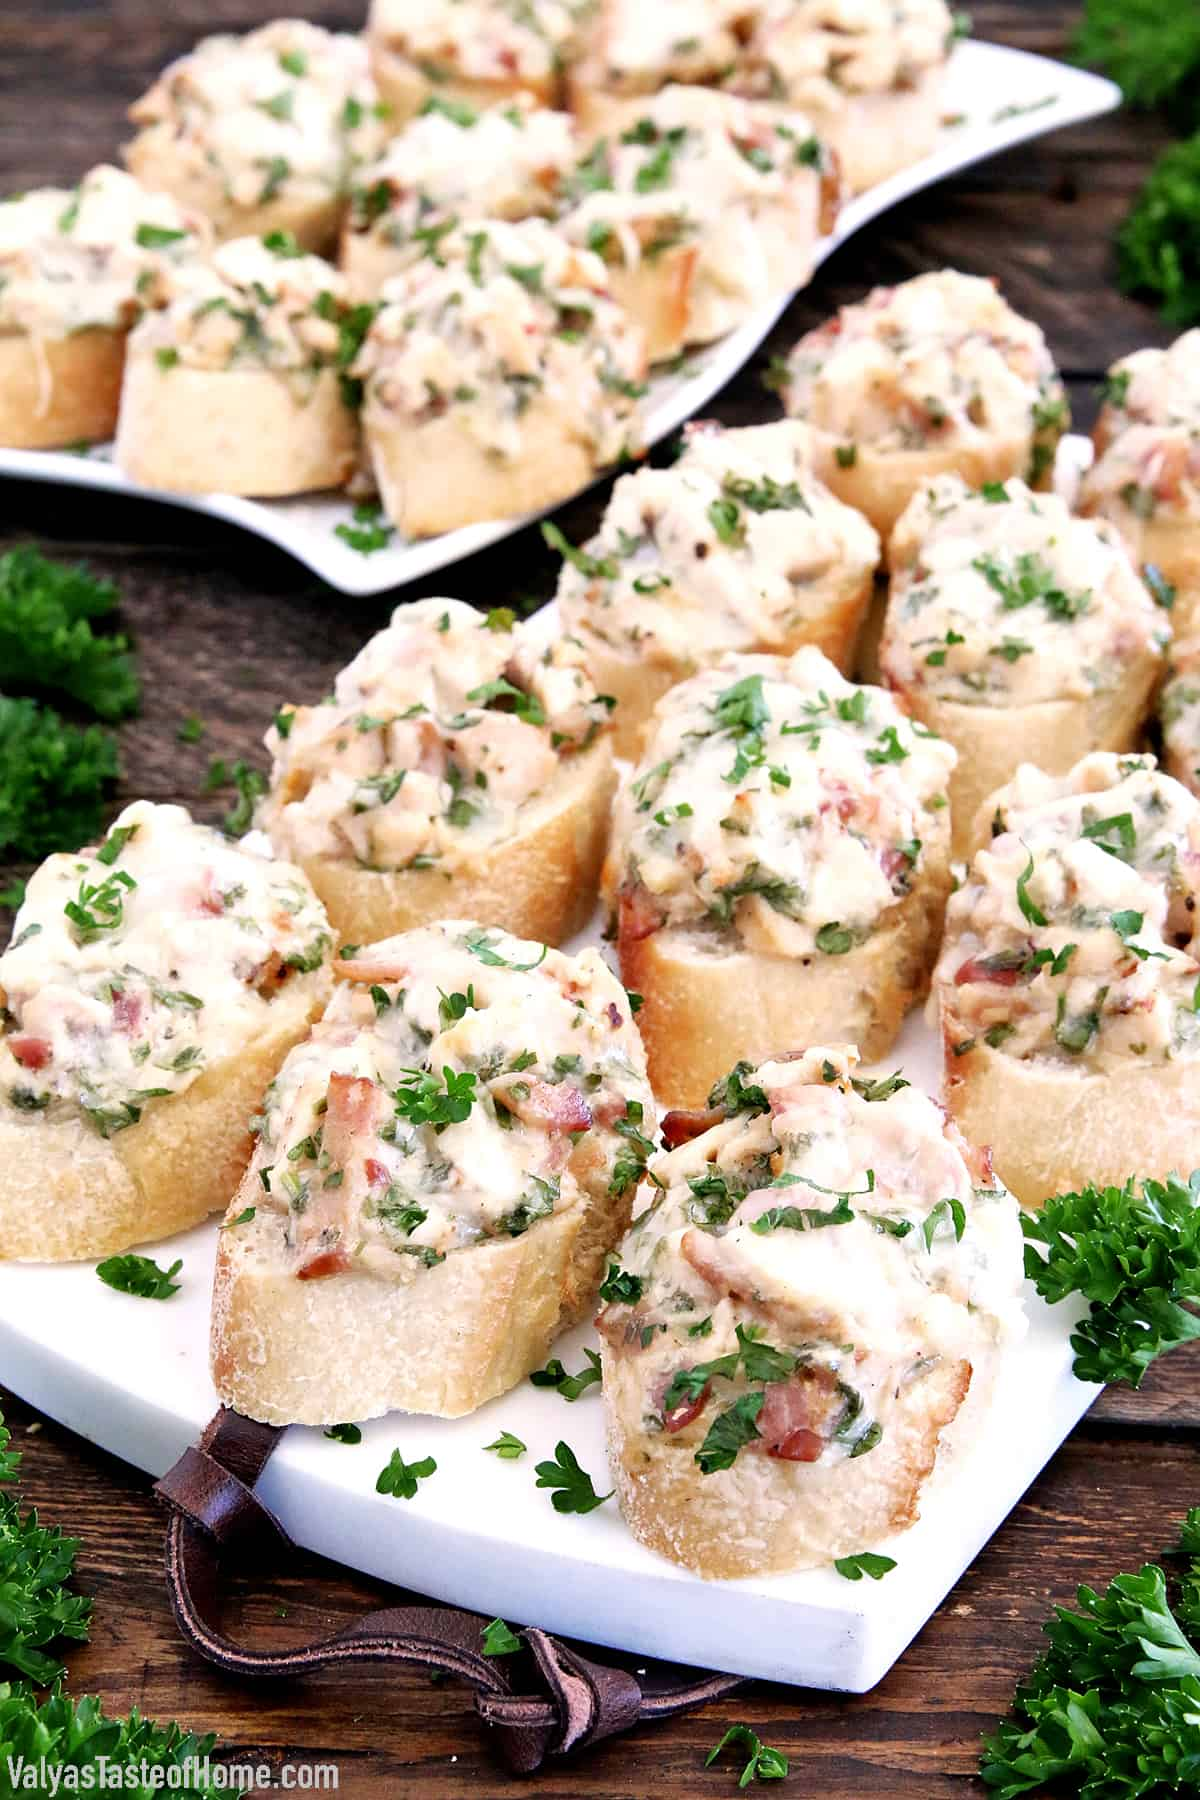 These Chicken Bacon Alfredo Canapés Appetizers are absolutely delicious served warm. These appetizers are so hearty and filling it also eats like a meal. You may turn it into a fantastic meal by adding a good homemade Caesar salad for an easy, light, and perfect lunch.